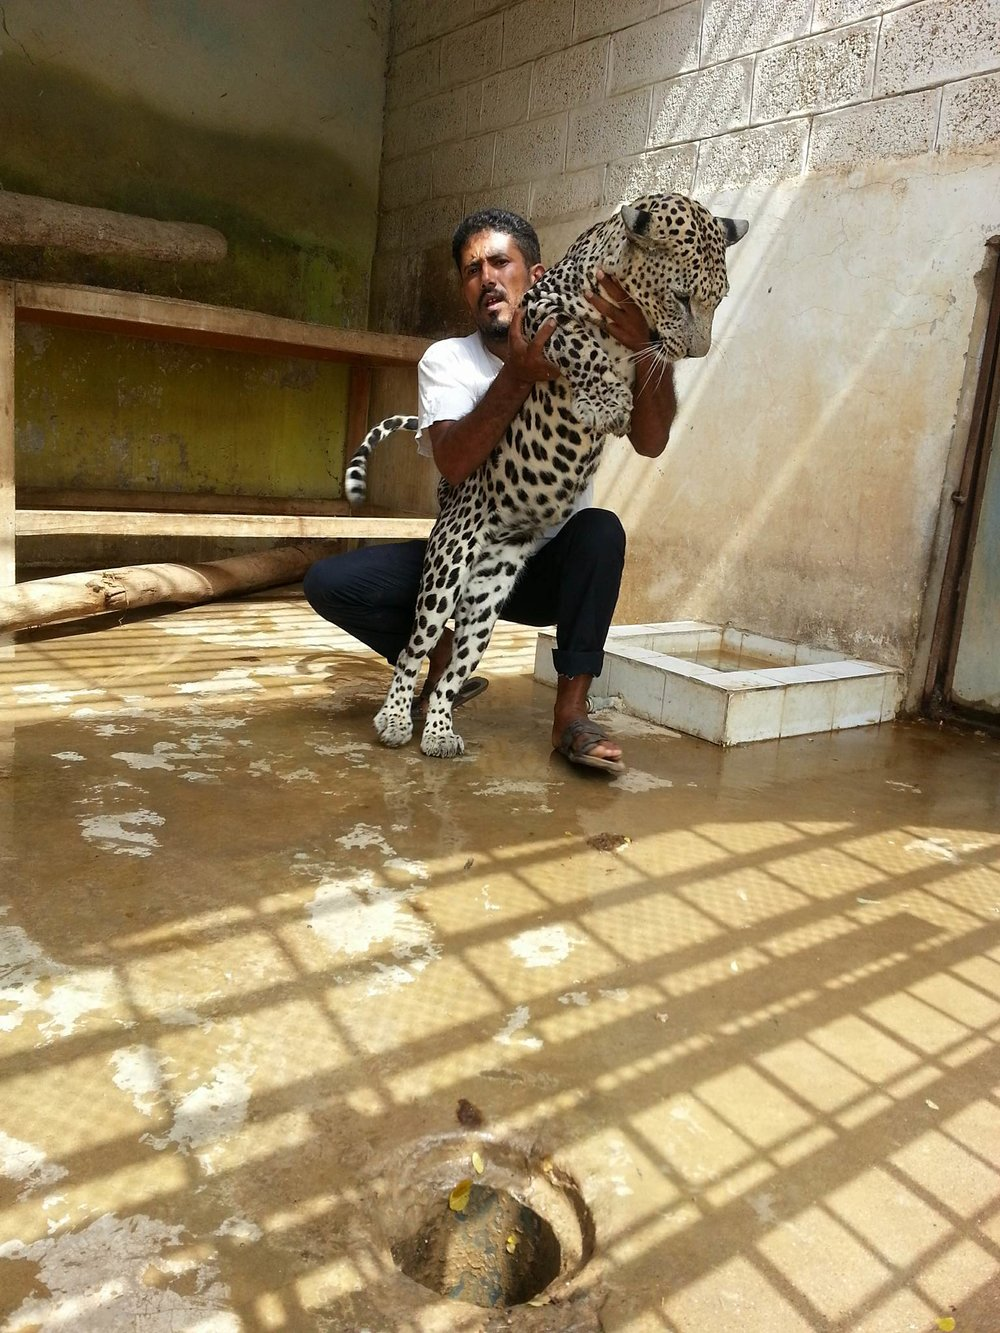 Taiz Zoo Sameer 19 July 2017.jpg